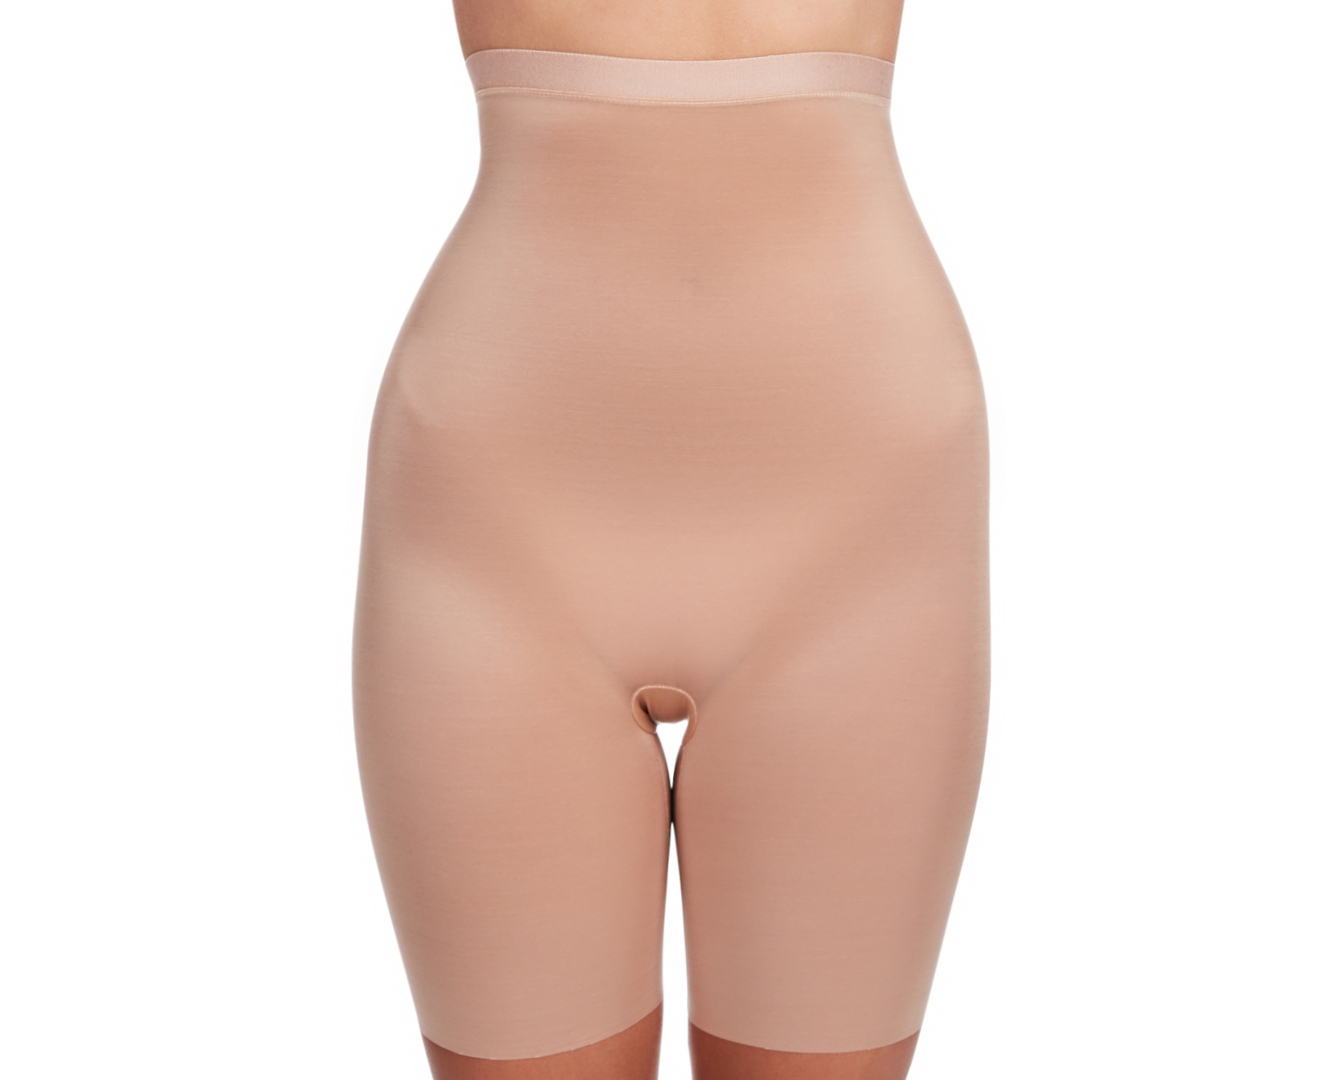 acb7d78802ed6 Spanx Women s Skinny Britches High Waisted Mid-Thigh Short - Naked 2.0